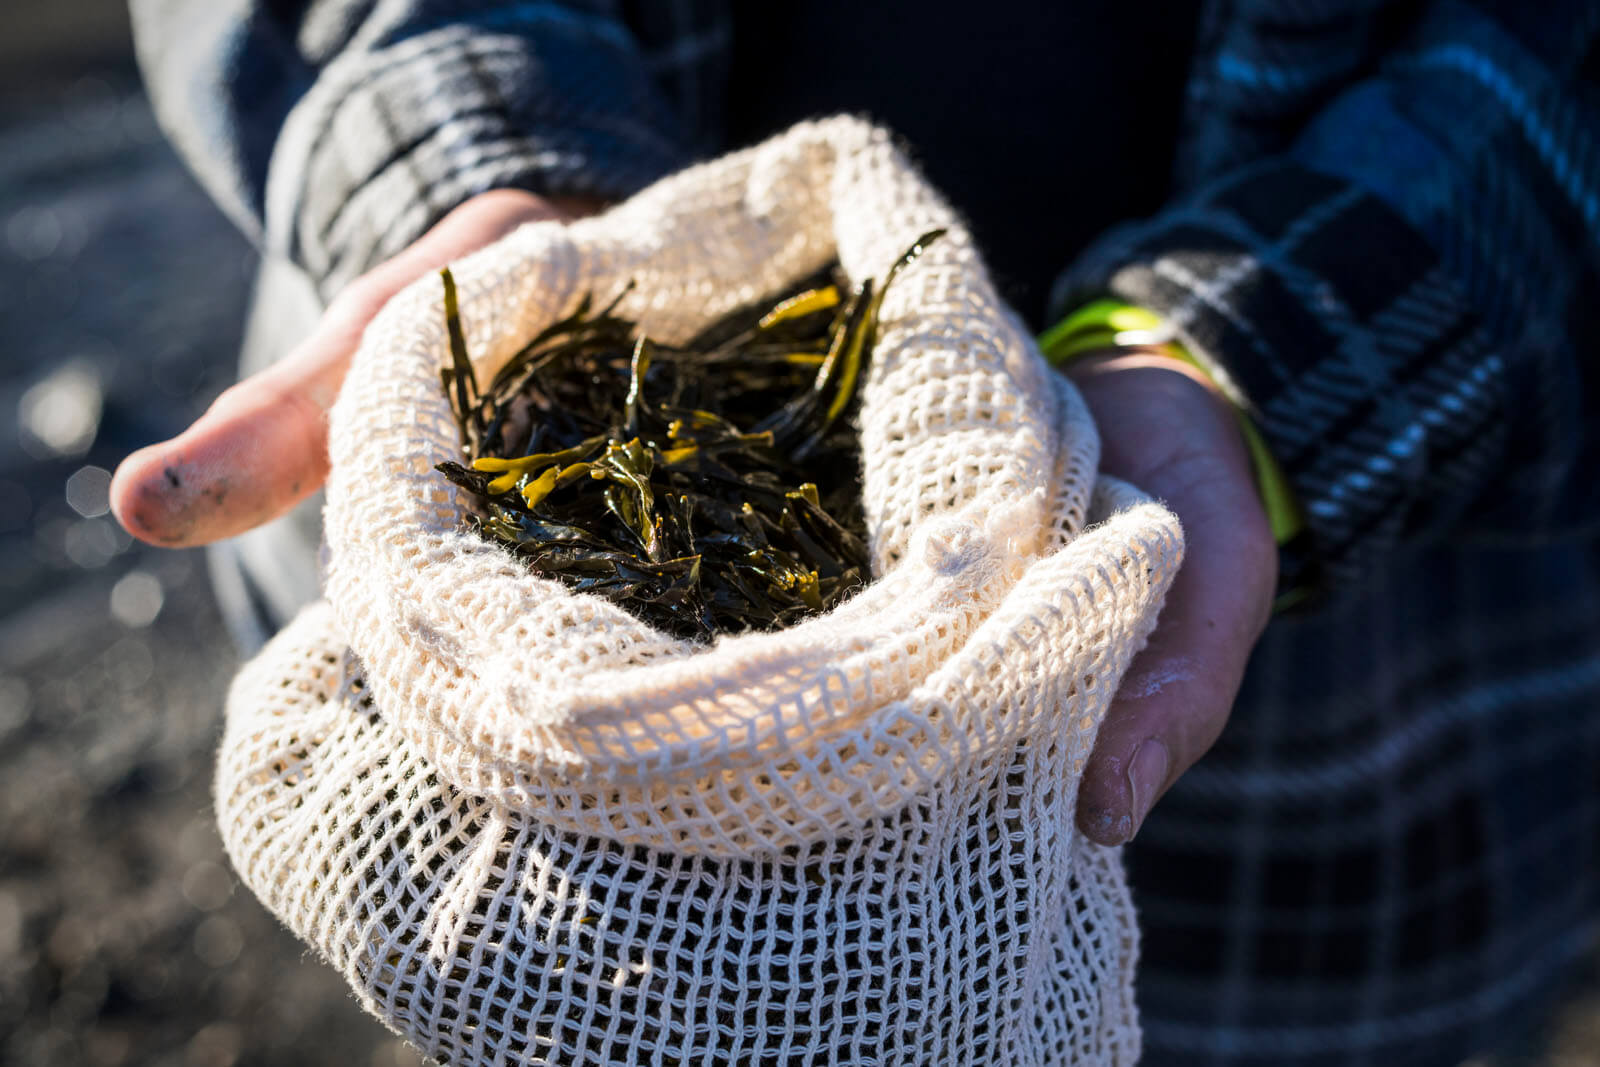 foraging bladderwrack shore to shore film kosta browne